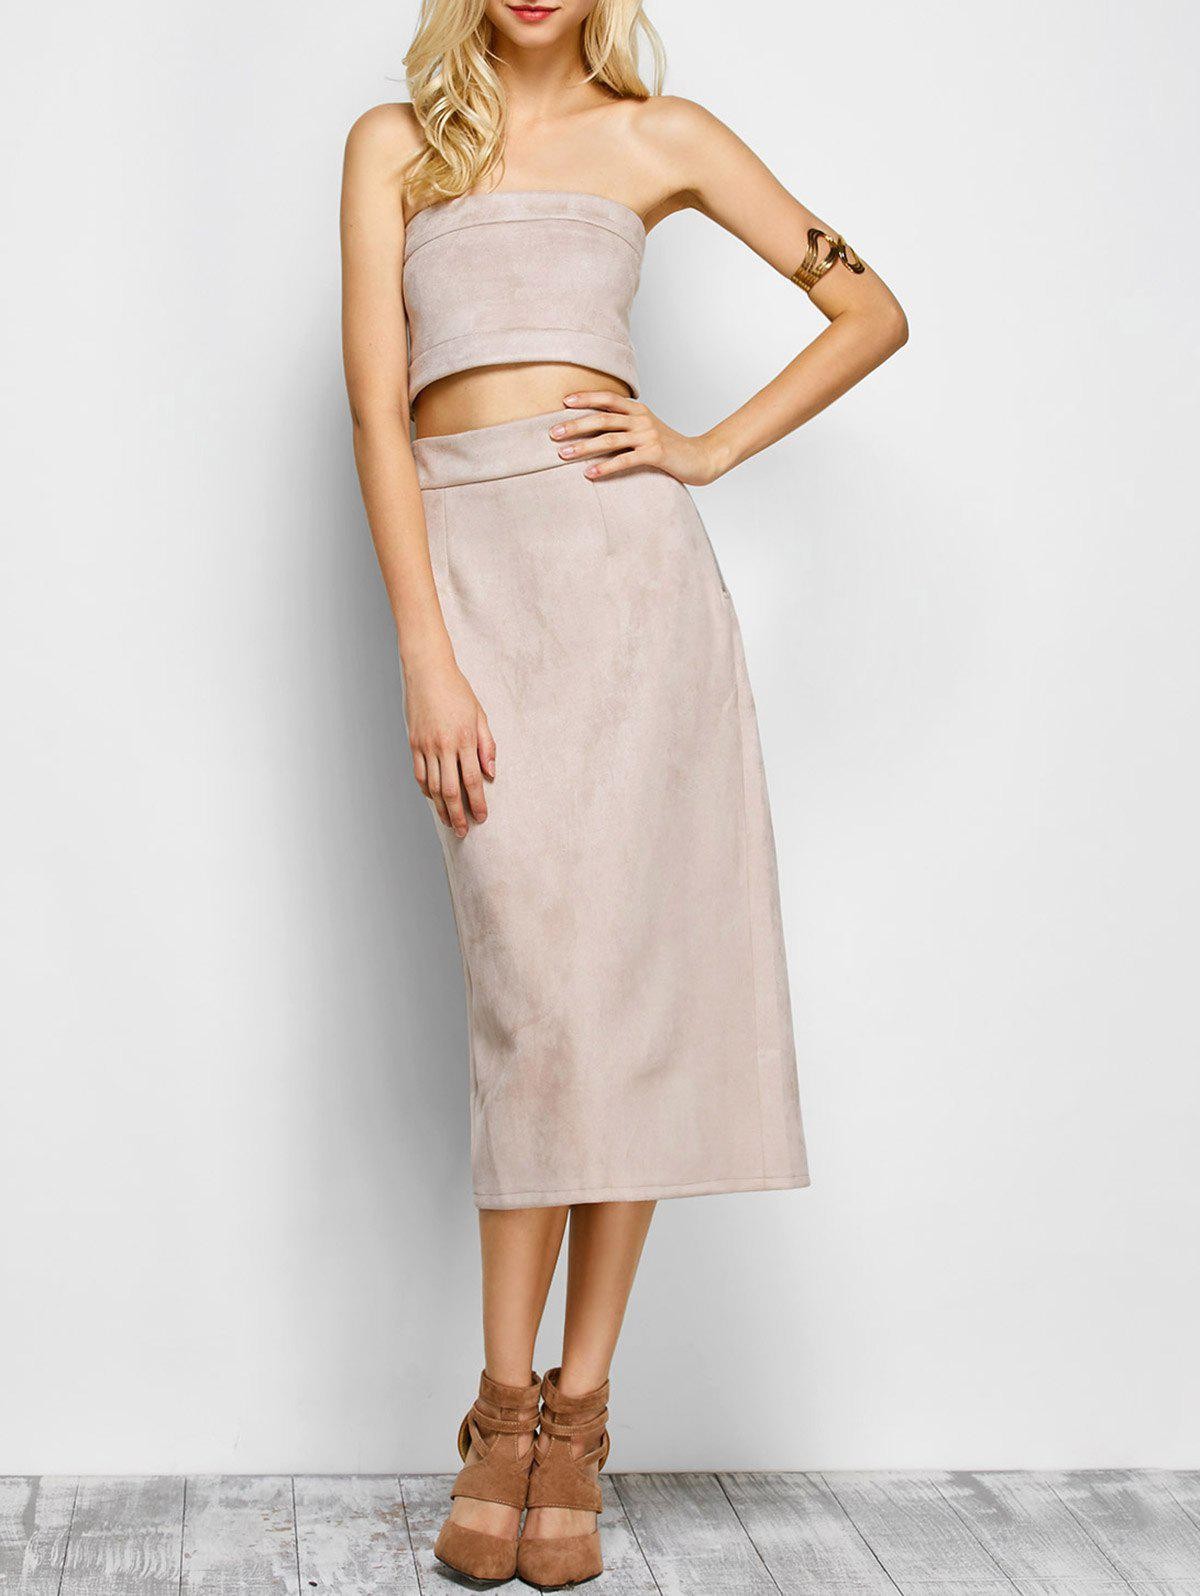 Suede Bodycon Midi Skirt with Tube Top - LIGHT APRICOT PINK S